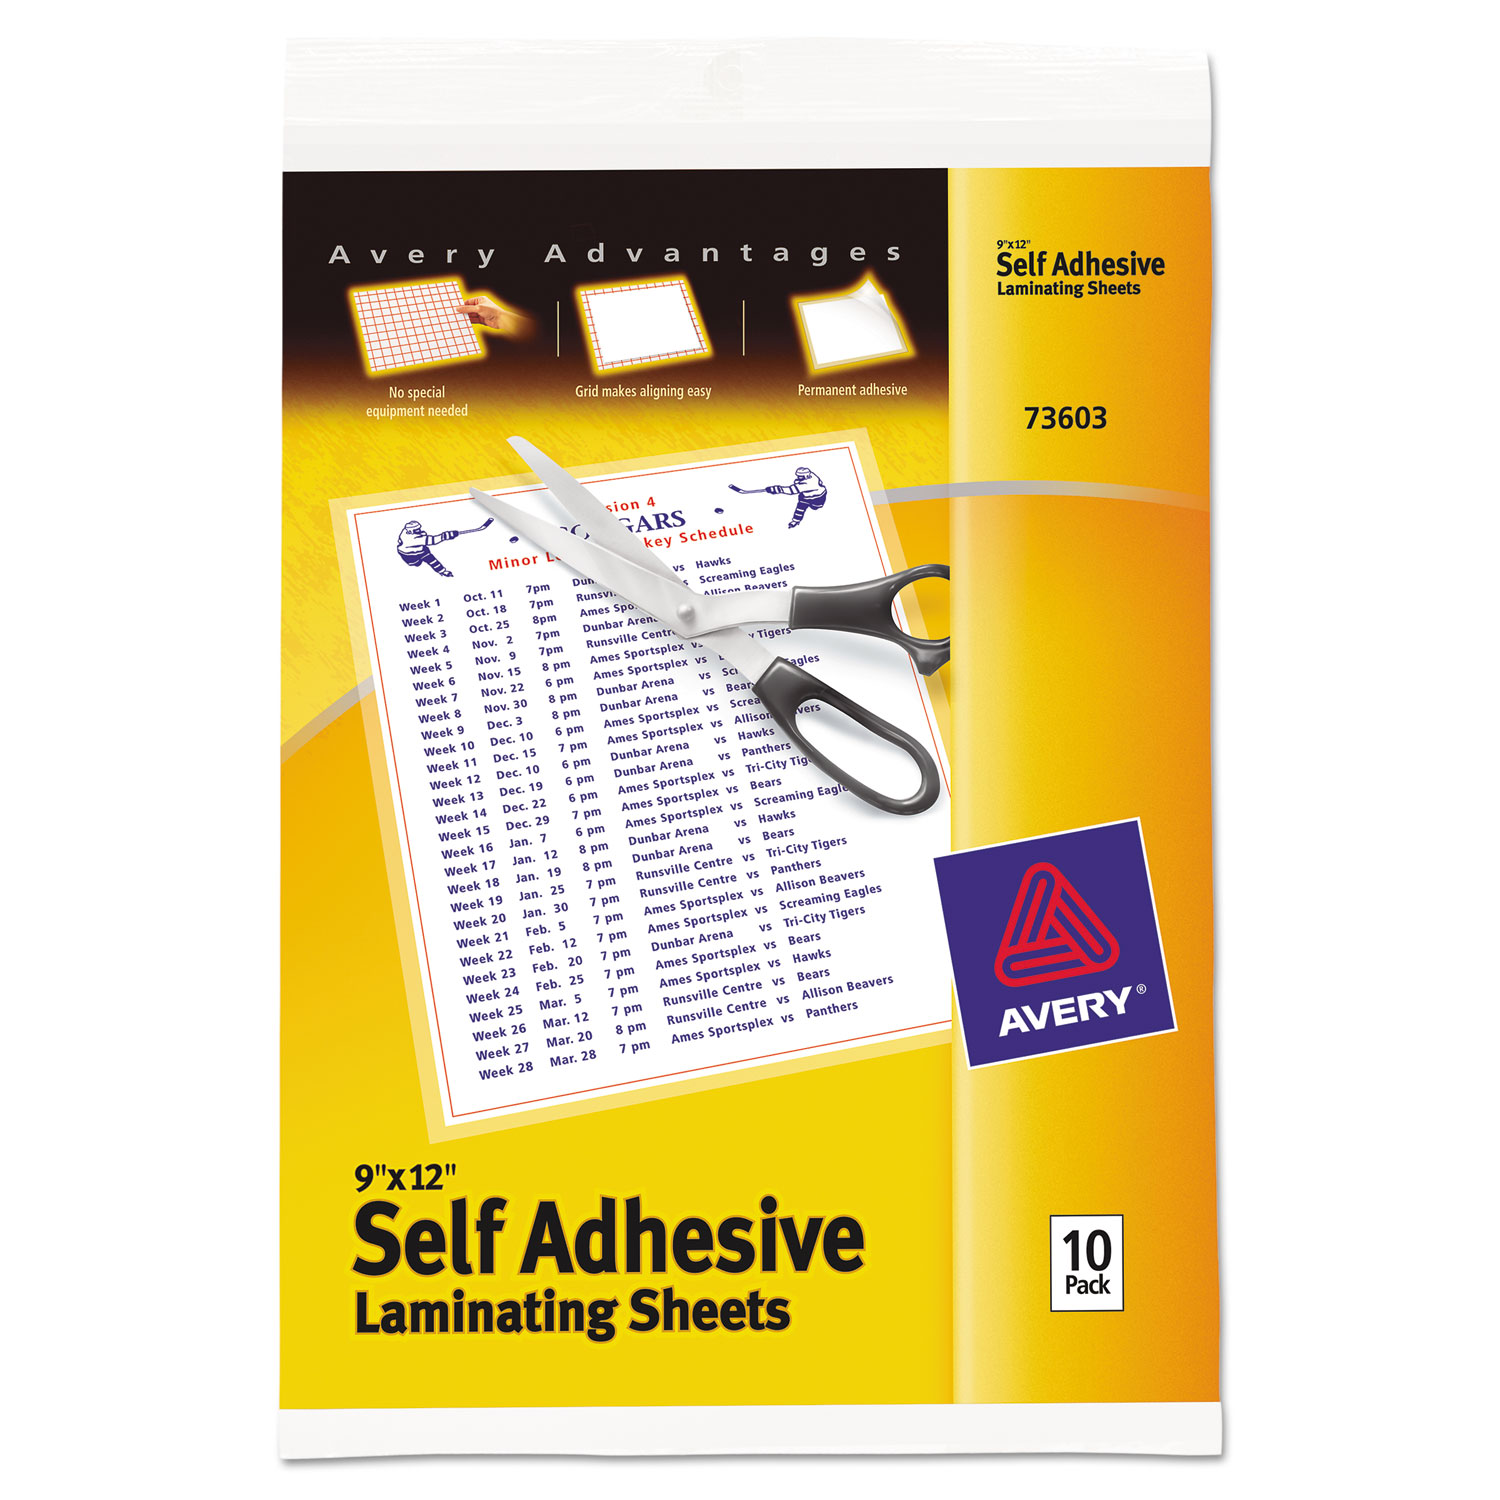 Clear Self Adhesive Laminating Sheets By Avery 174 Ave73603